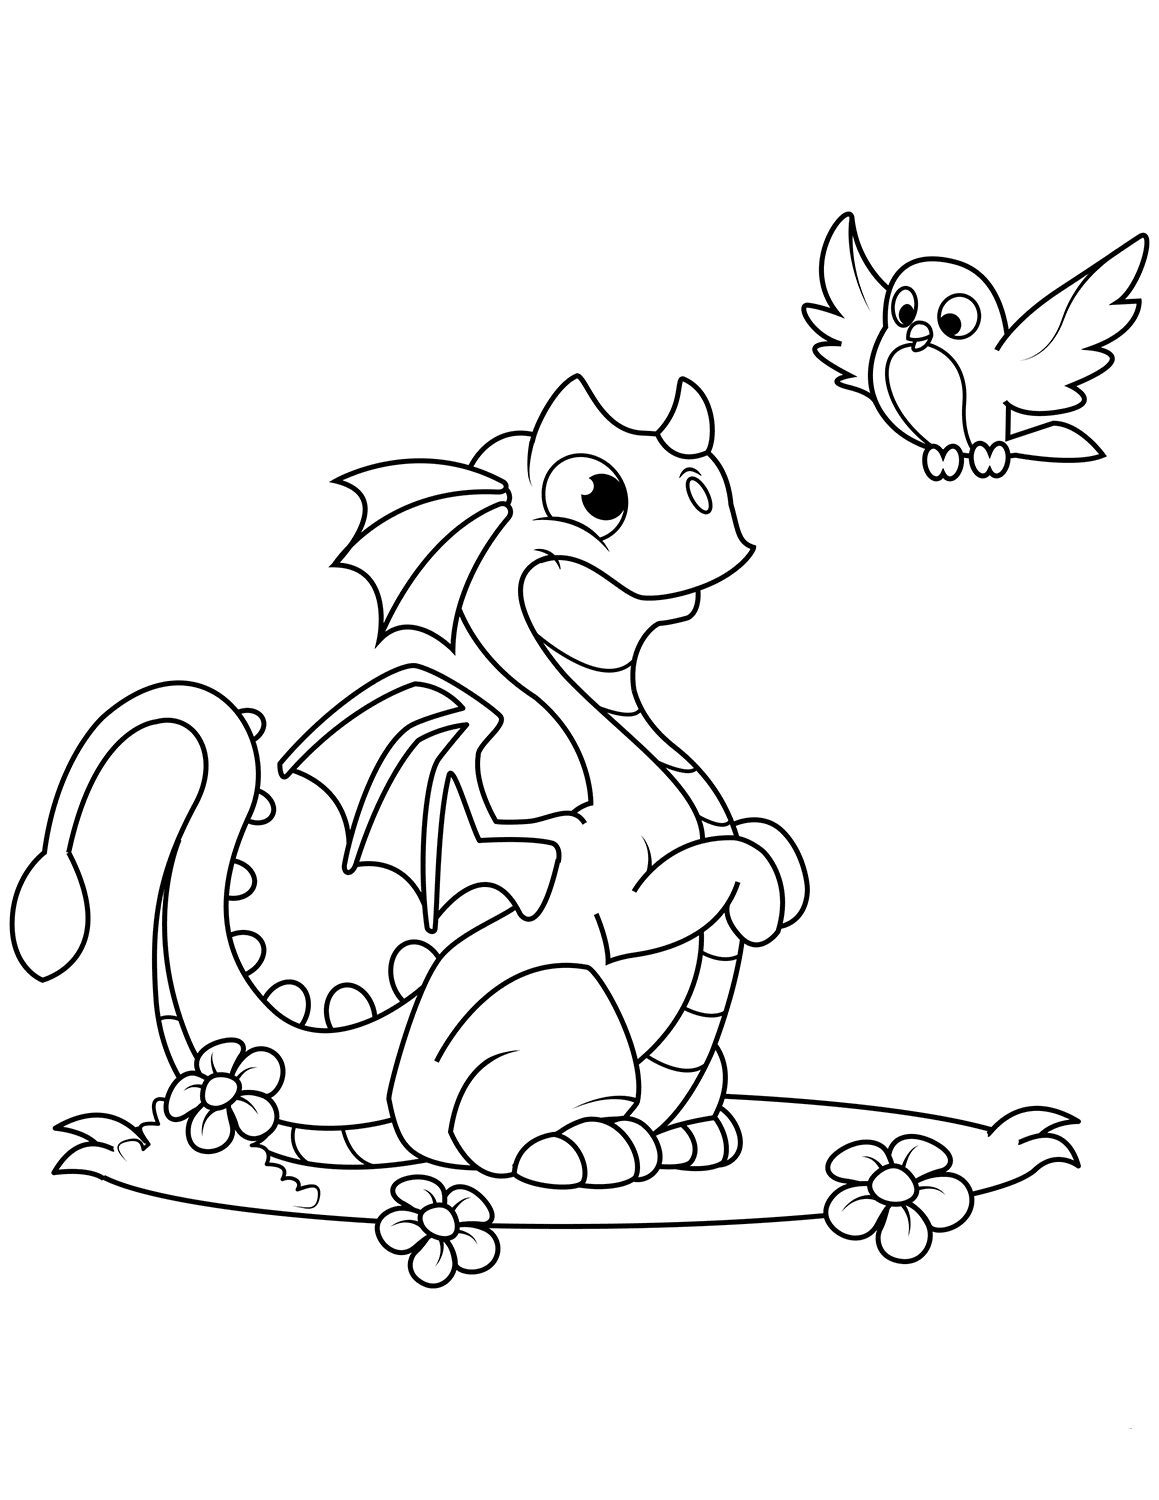 printable cute dragon coloring pages cute little dragon coloring page free printable coloring dragon coloring pages cute printable